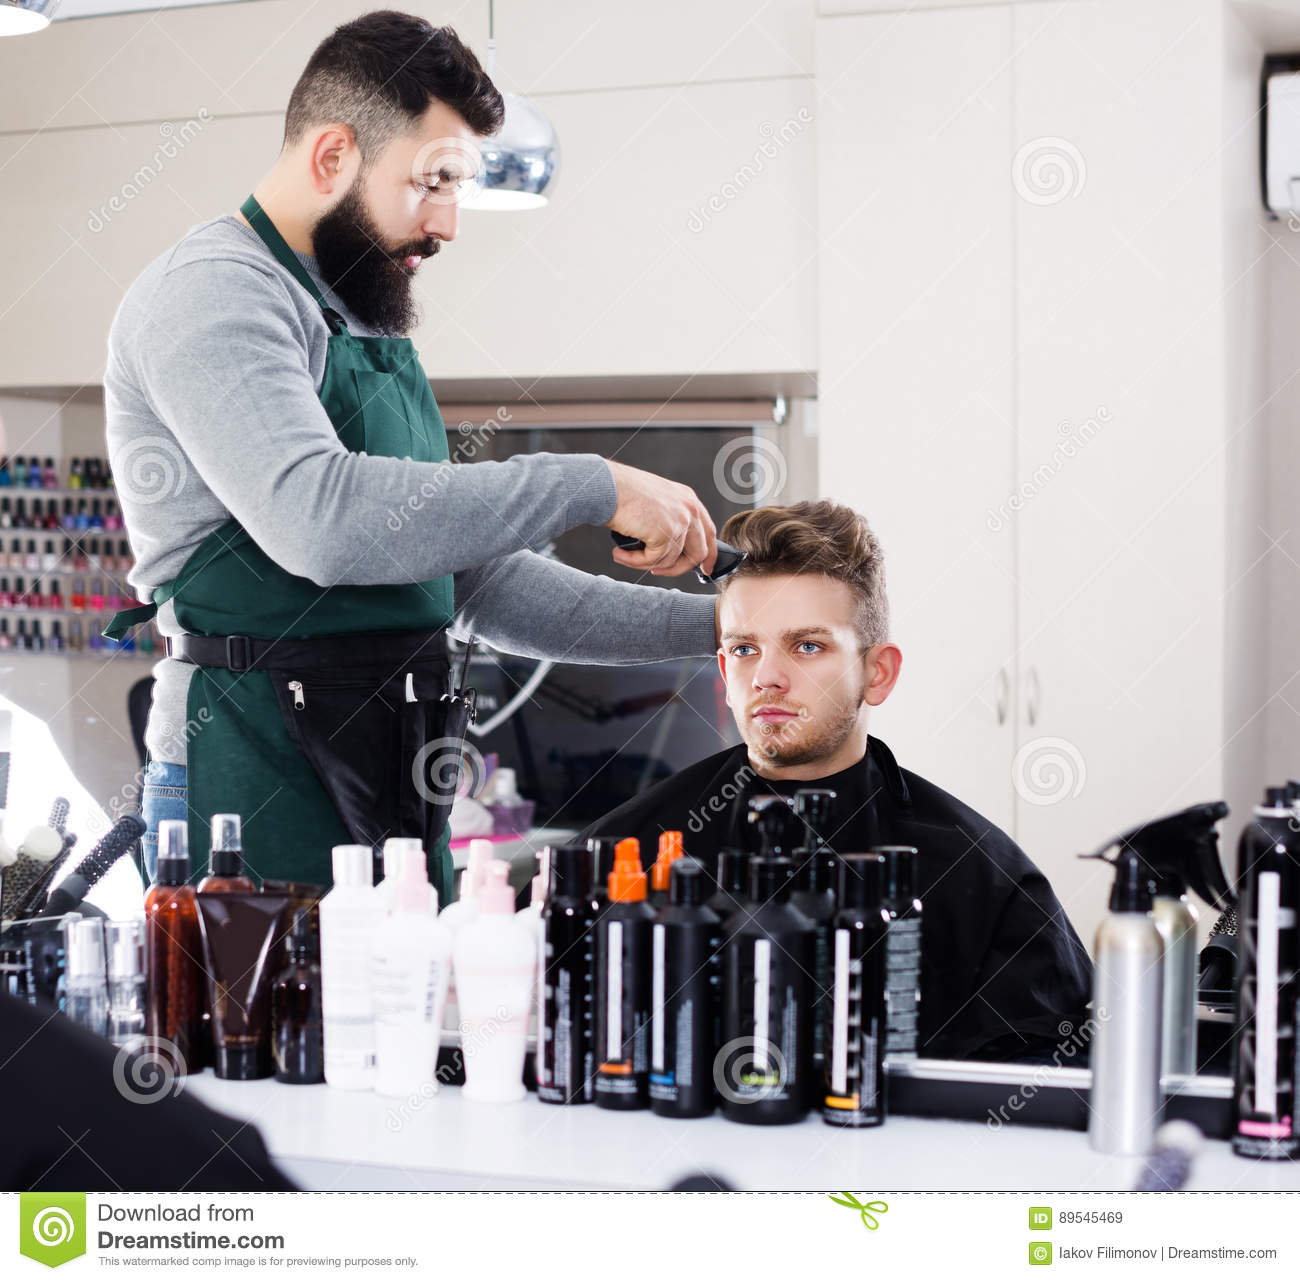 Hairdresser Doing New Haircut Stock Image - Image: 89545469